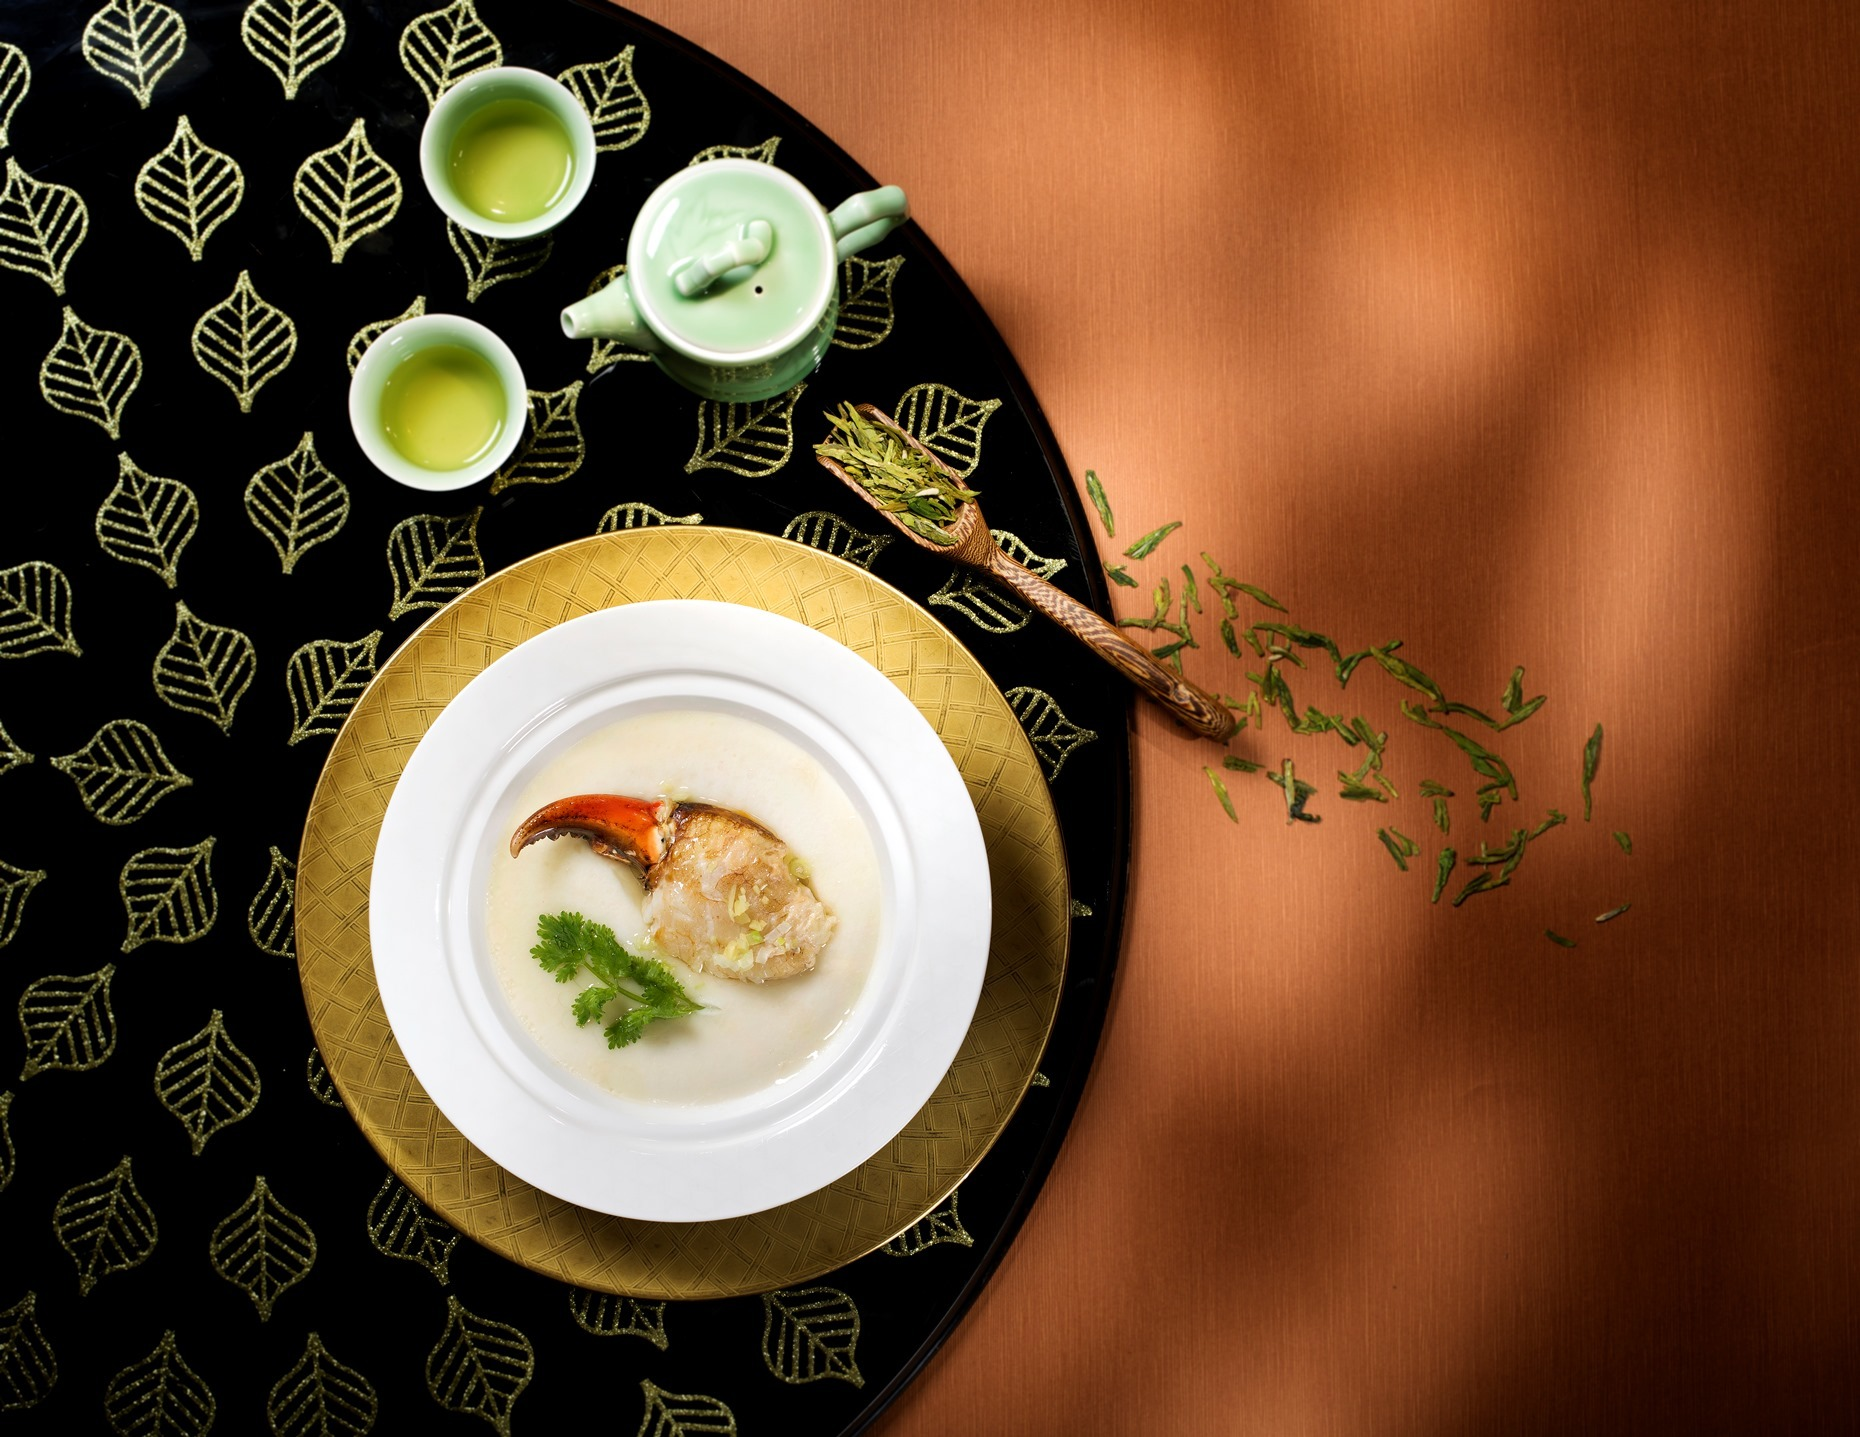 Golden Leaf - Steamed fresh crab claw with Chinese rice and ginger paired with Xihu Pre Qingming Long Jung Green